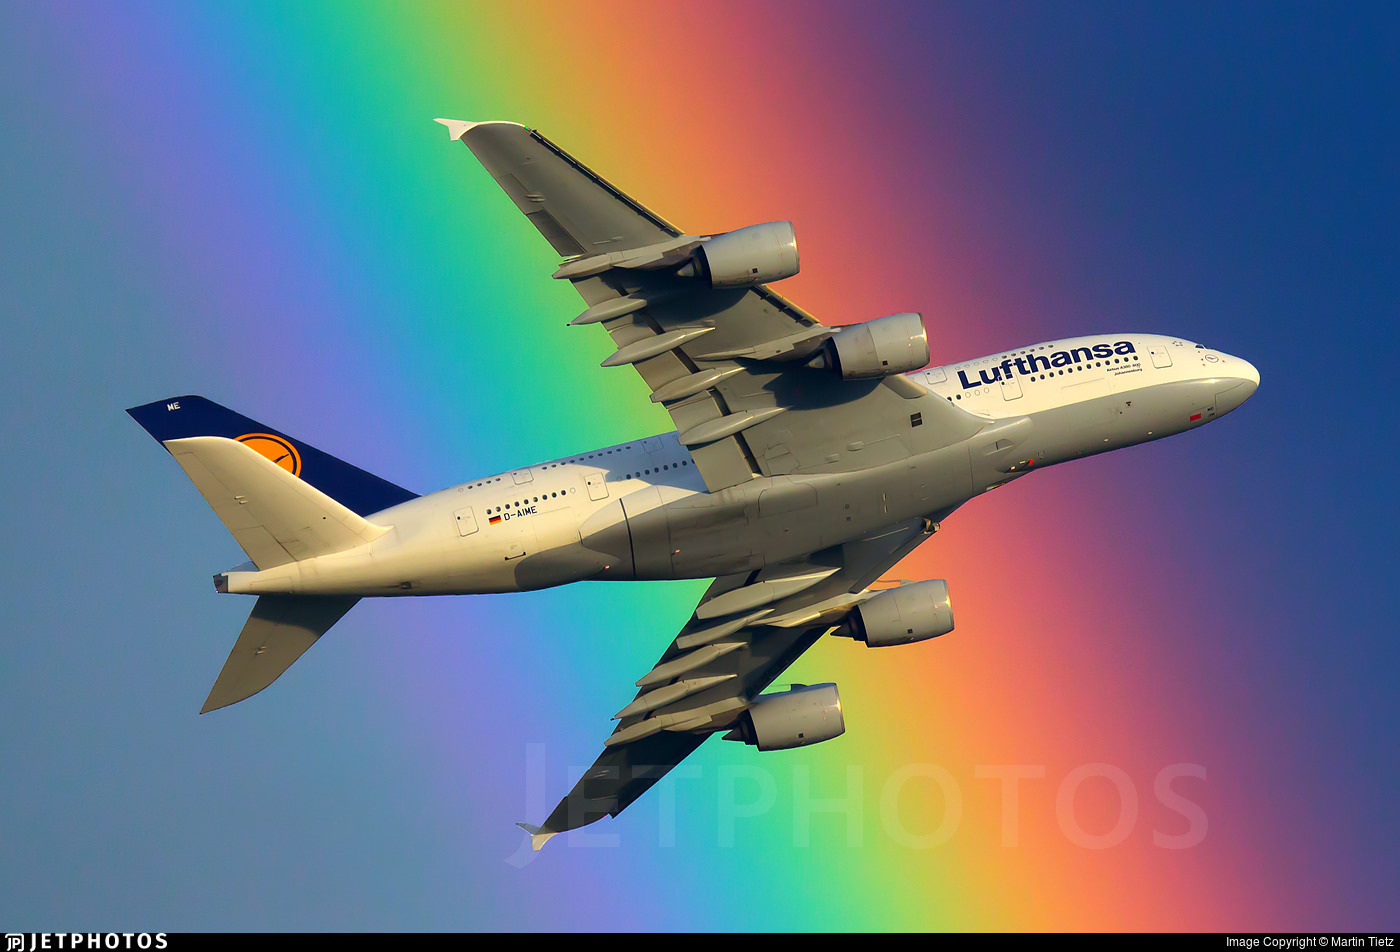 A Lufthansa A380 passing in front of a rainbow